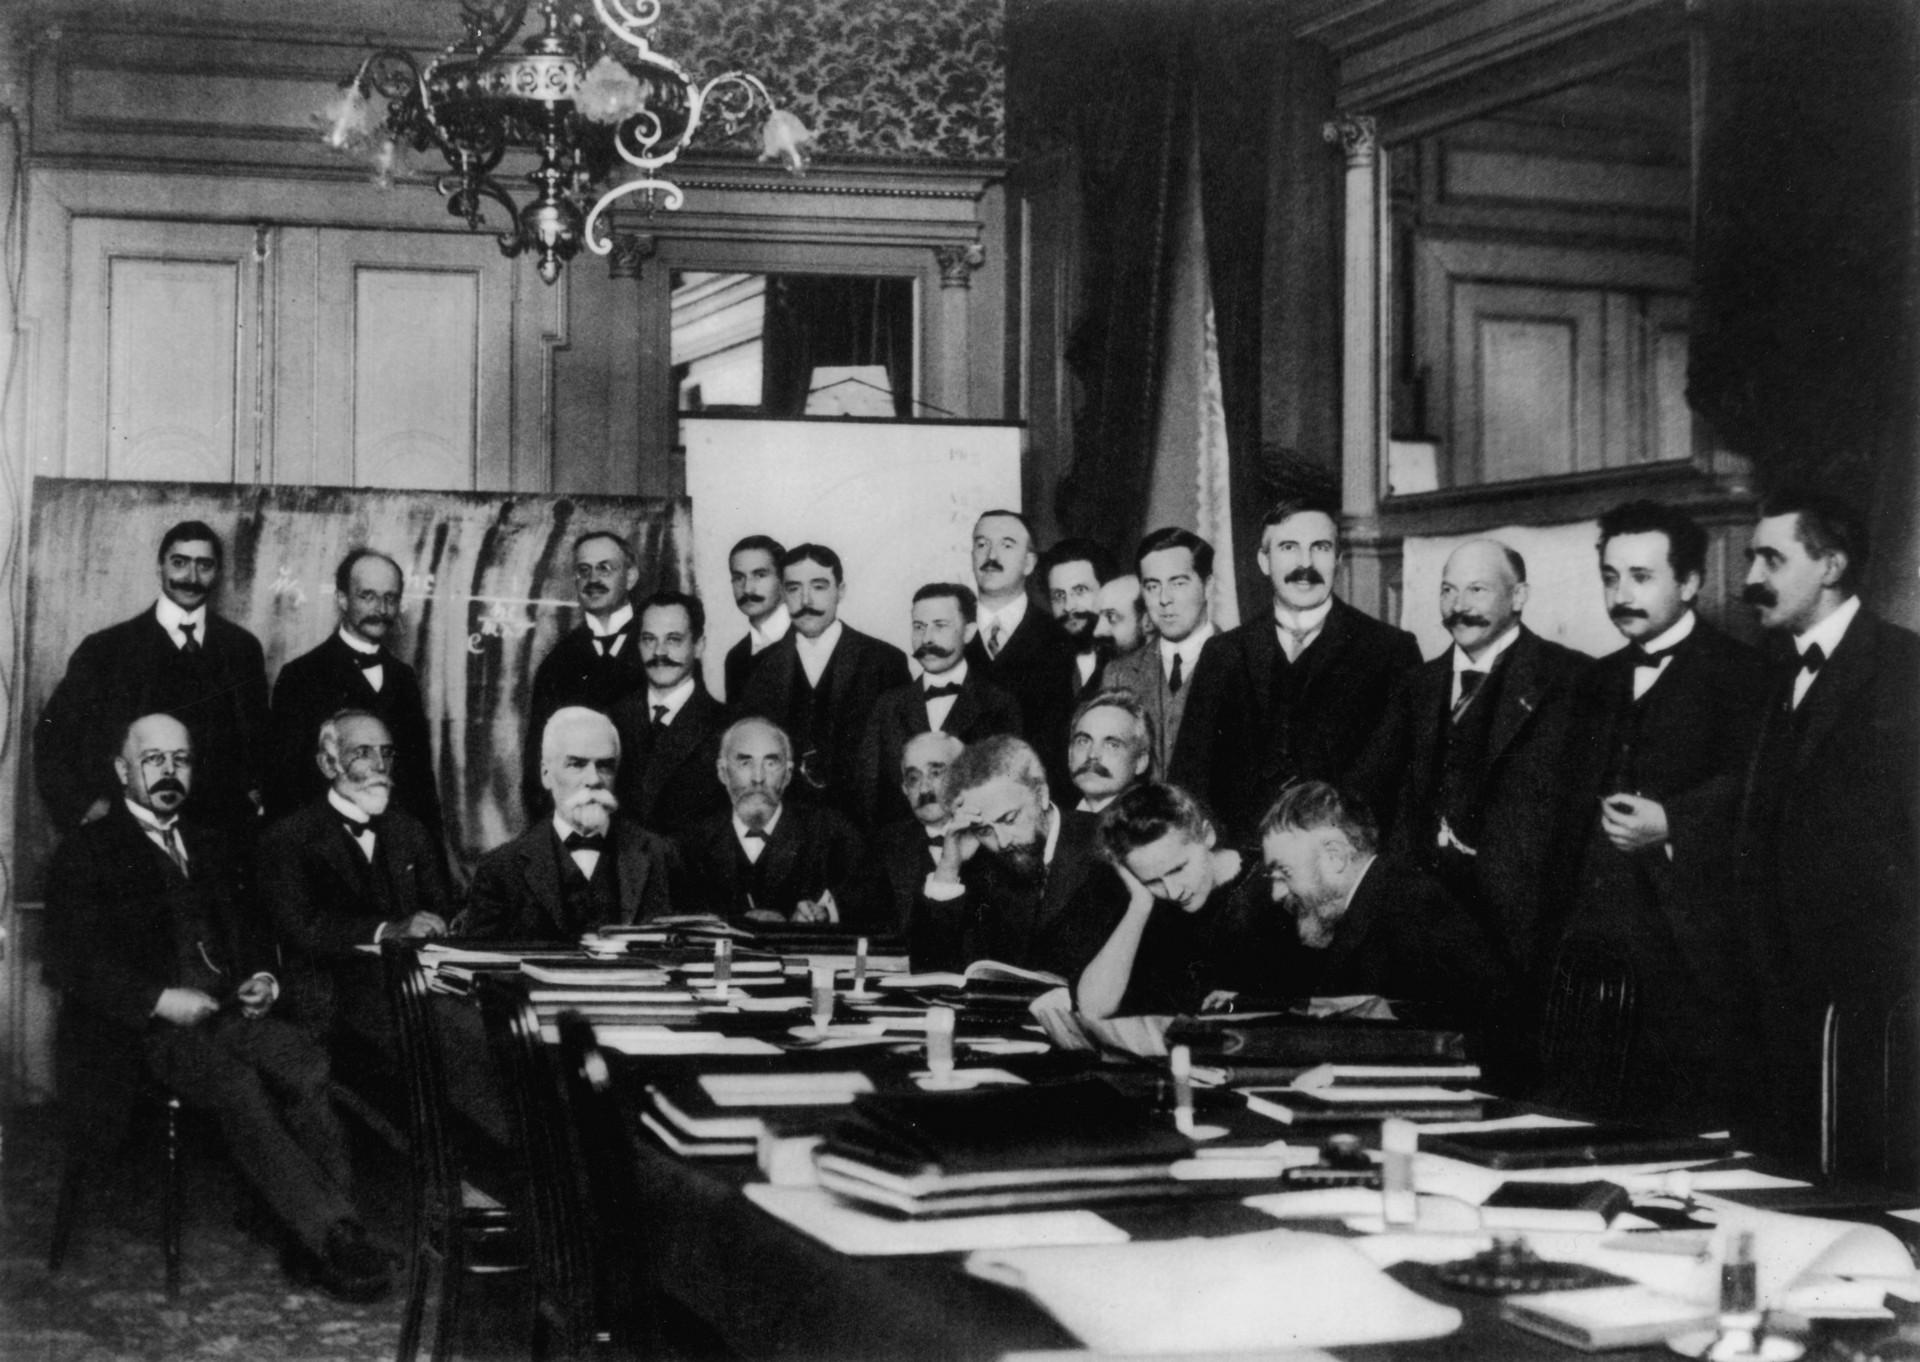 Marie Curie was the only female scientist at a 1911 conference of the world's top physicists. (Benjamin Couprie / Wikimedia Commons)